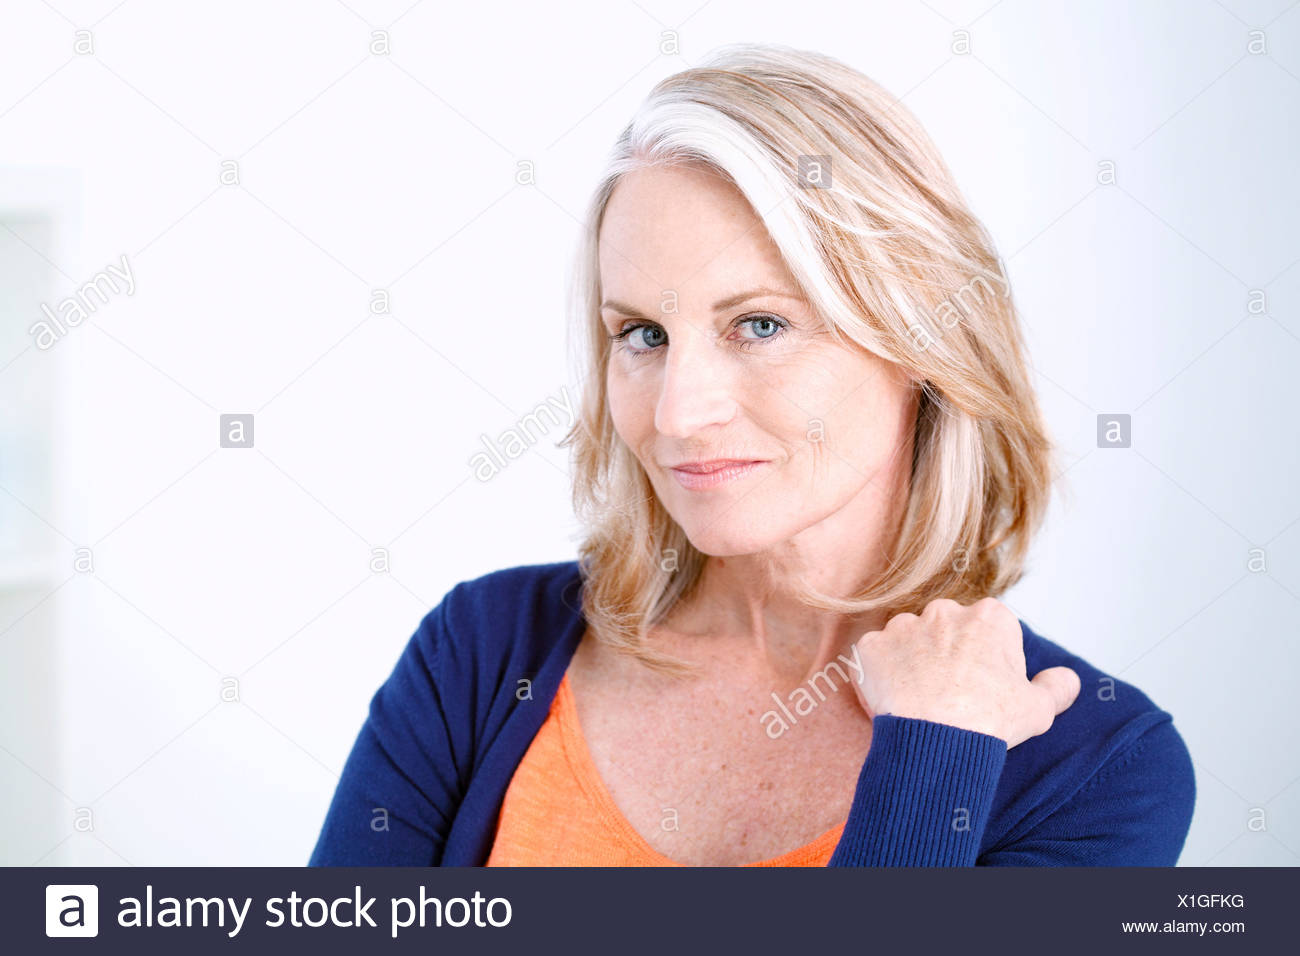 PORTRAIT WOMAN IN 50S - Stock Image